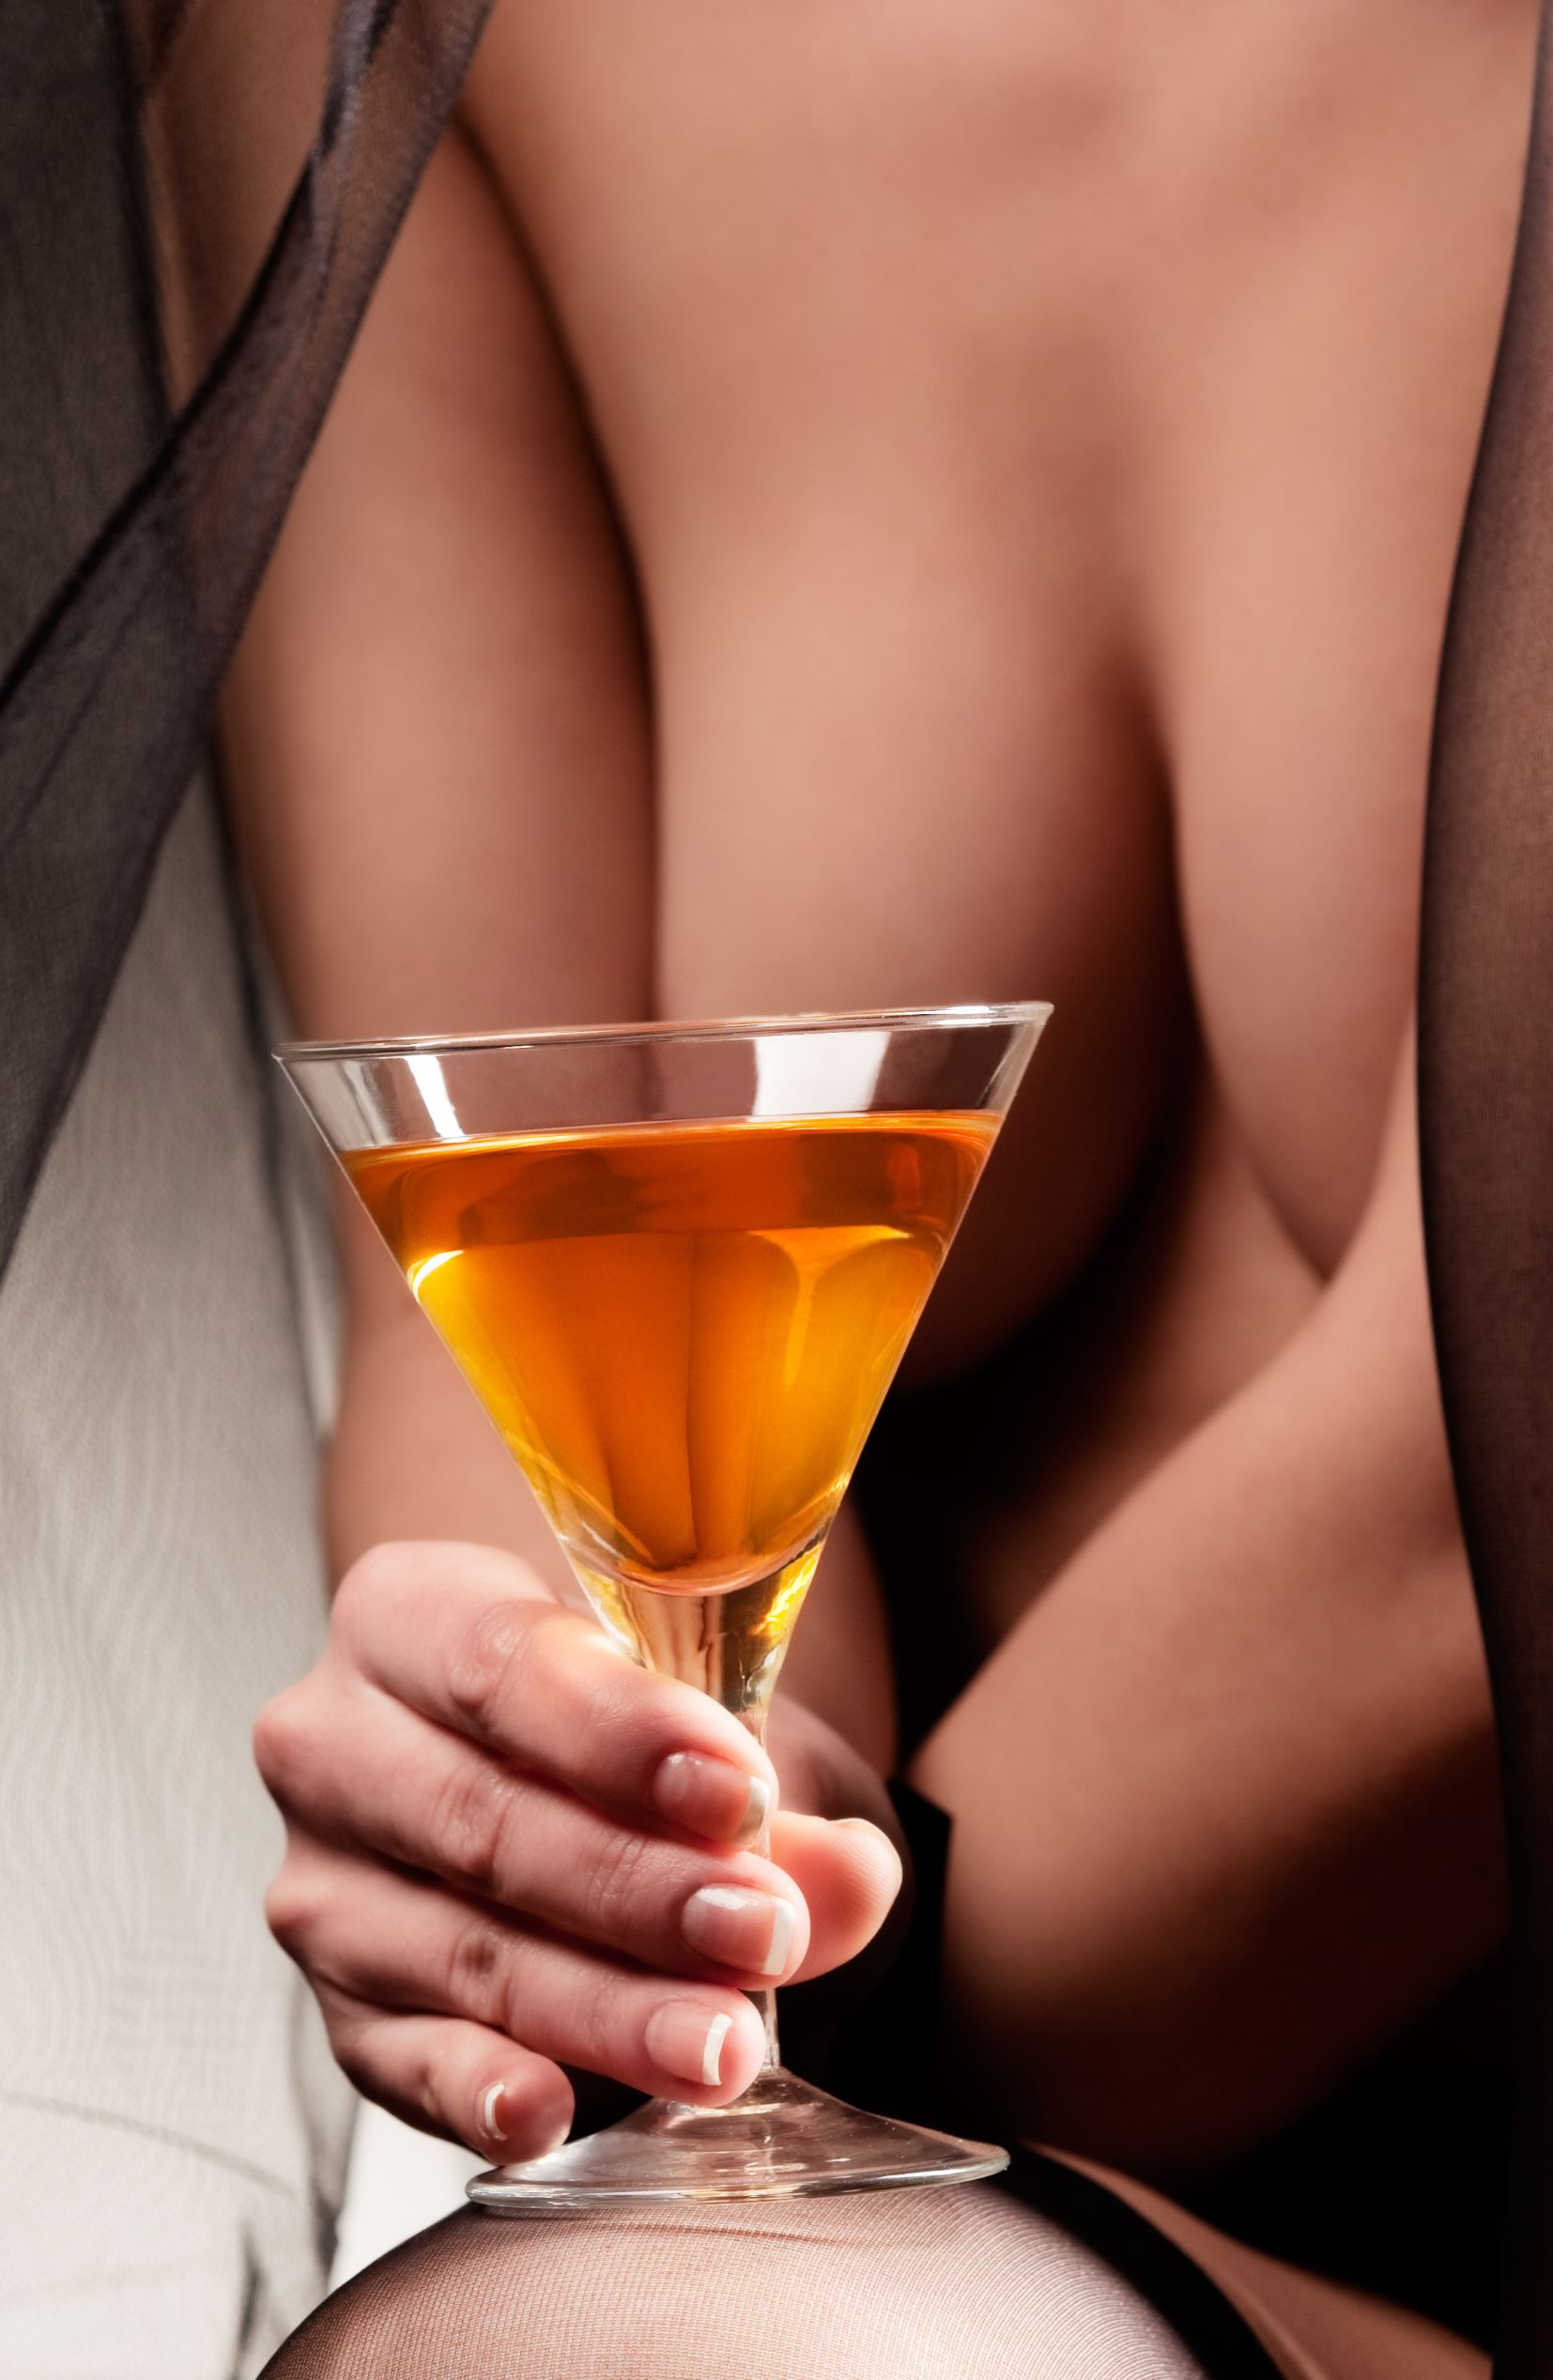 Woman covering breast with drink in cocktail glass